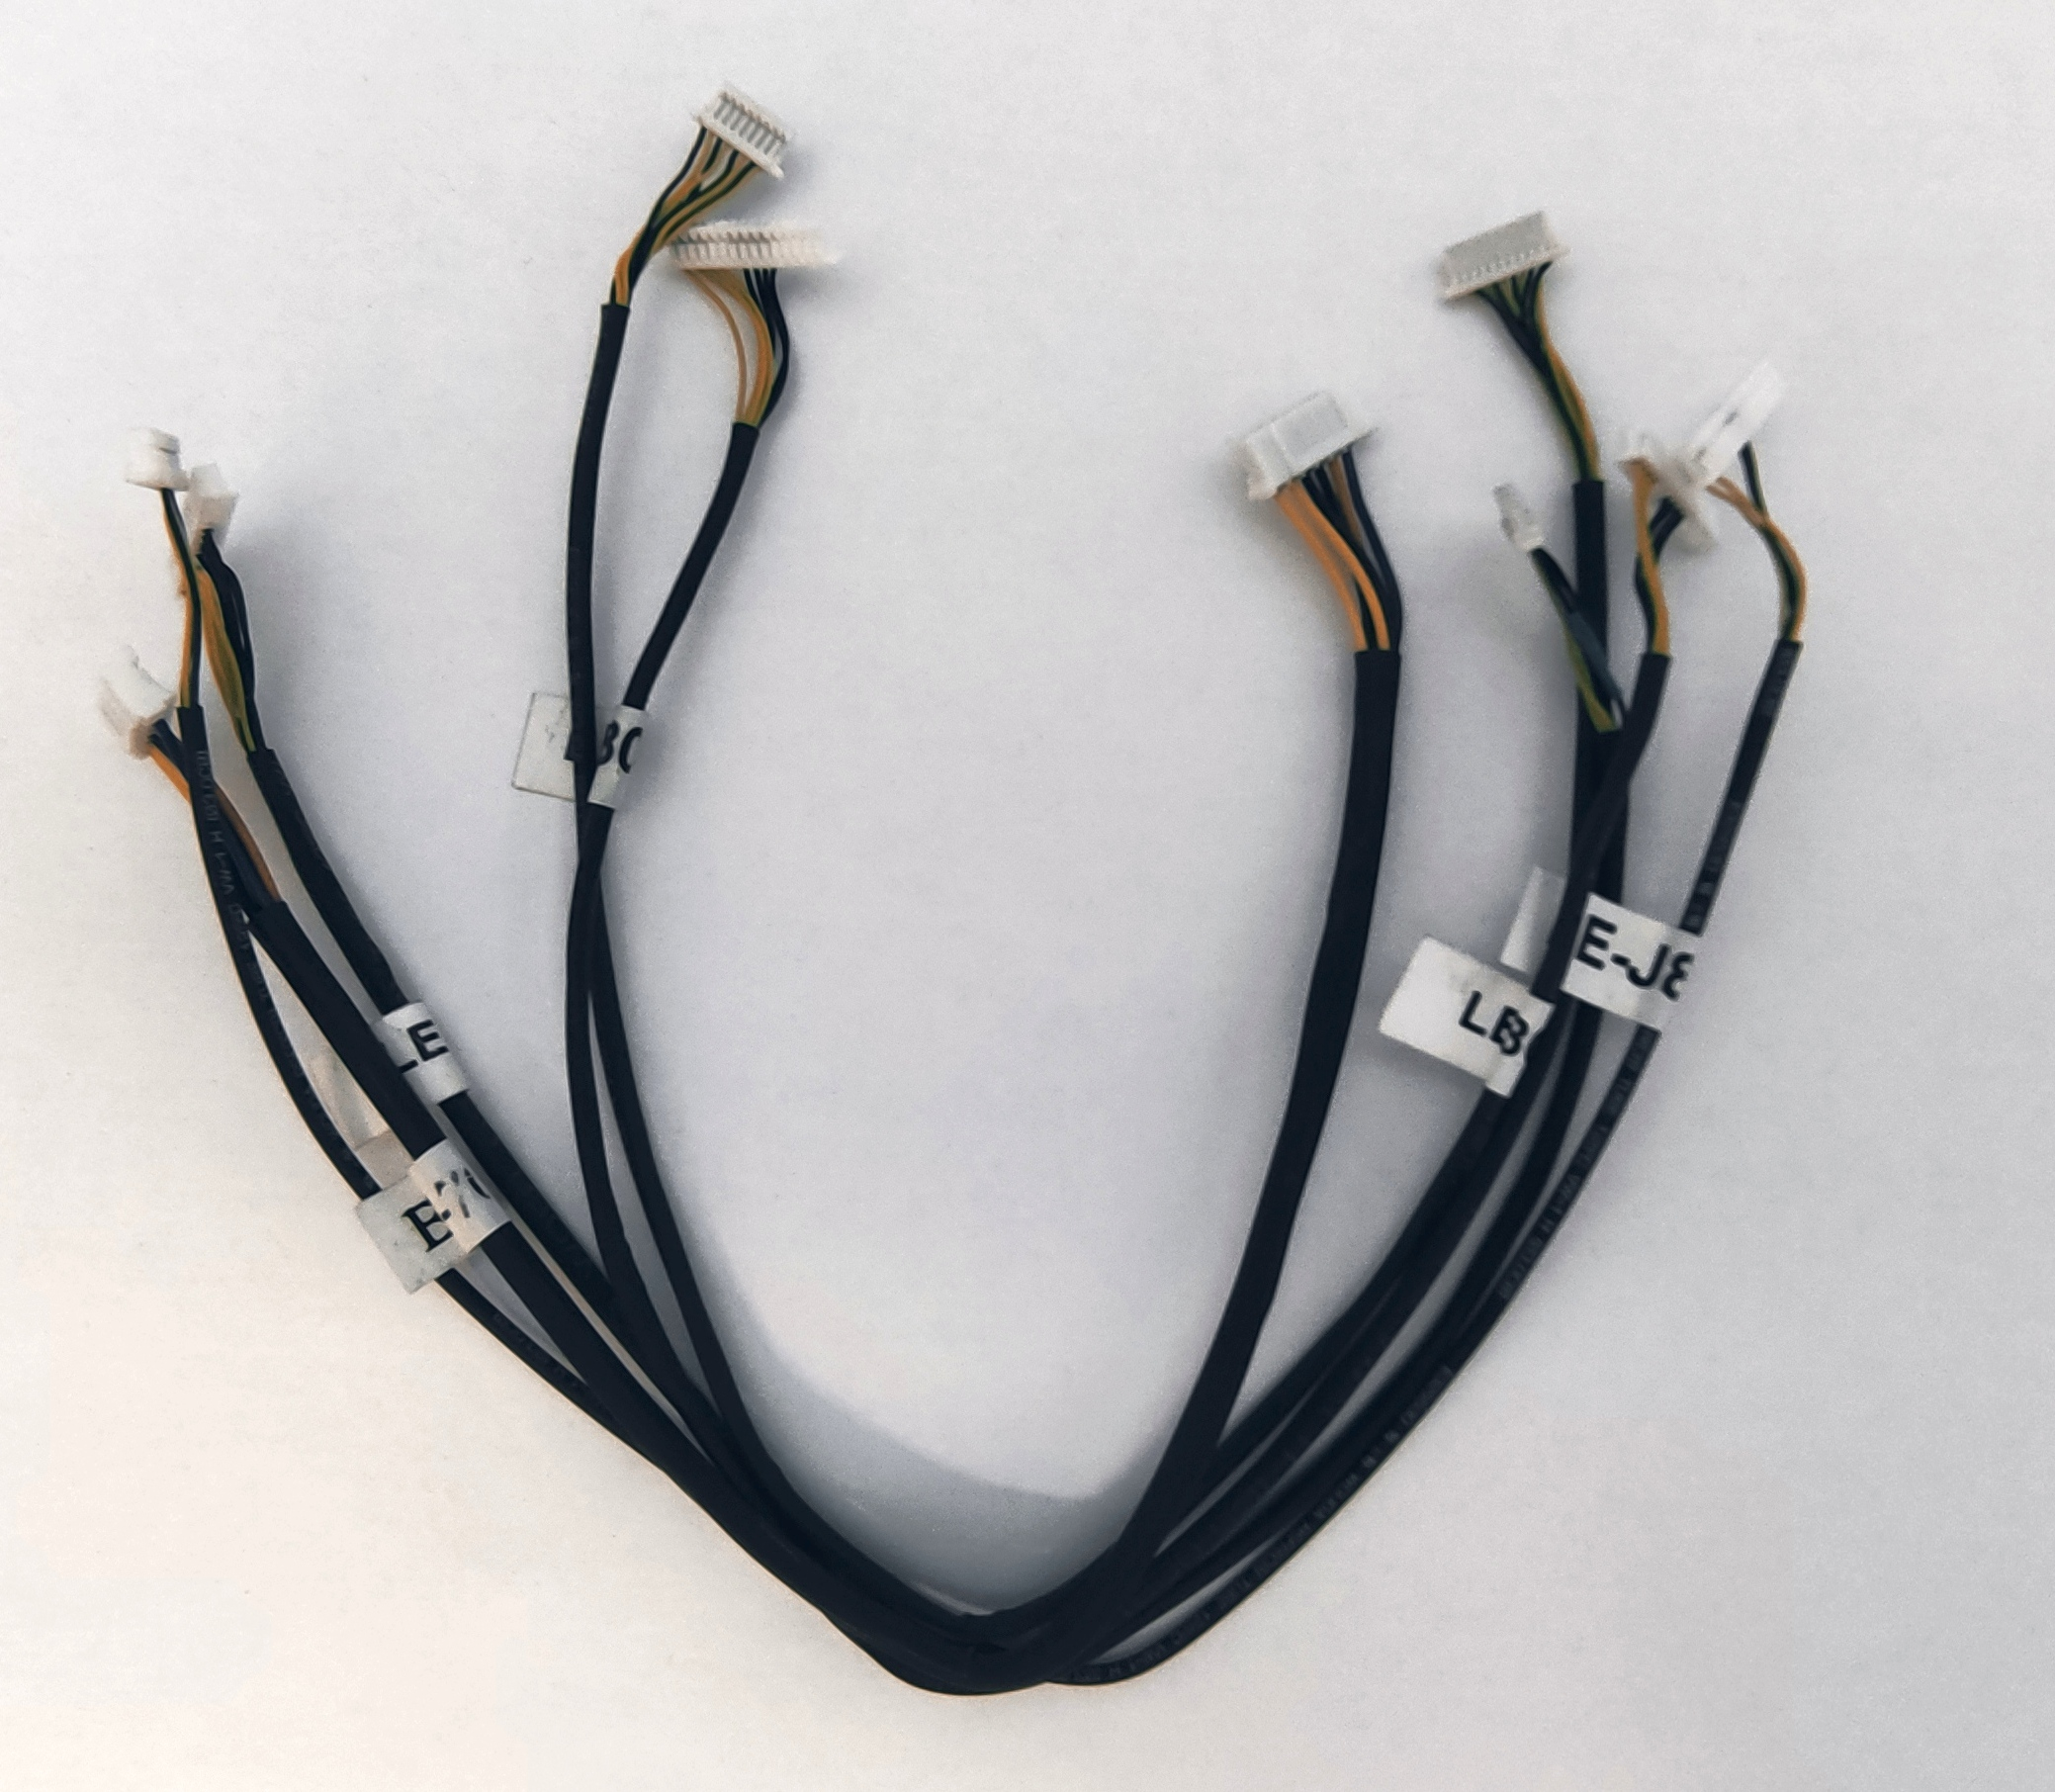 BT-cable-70636